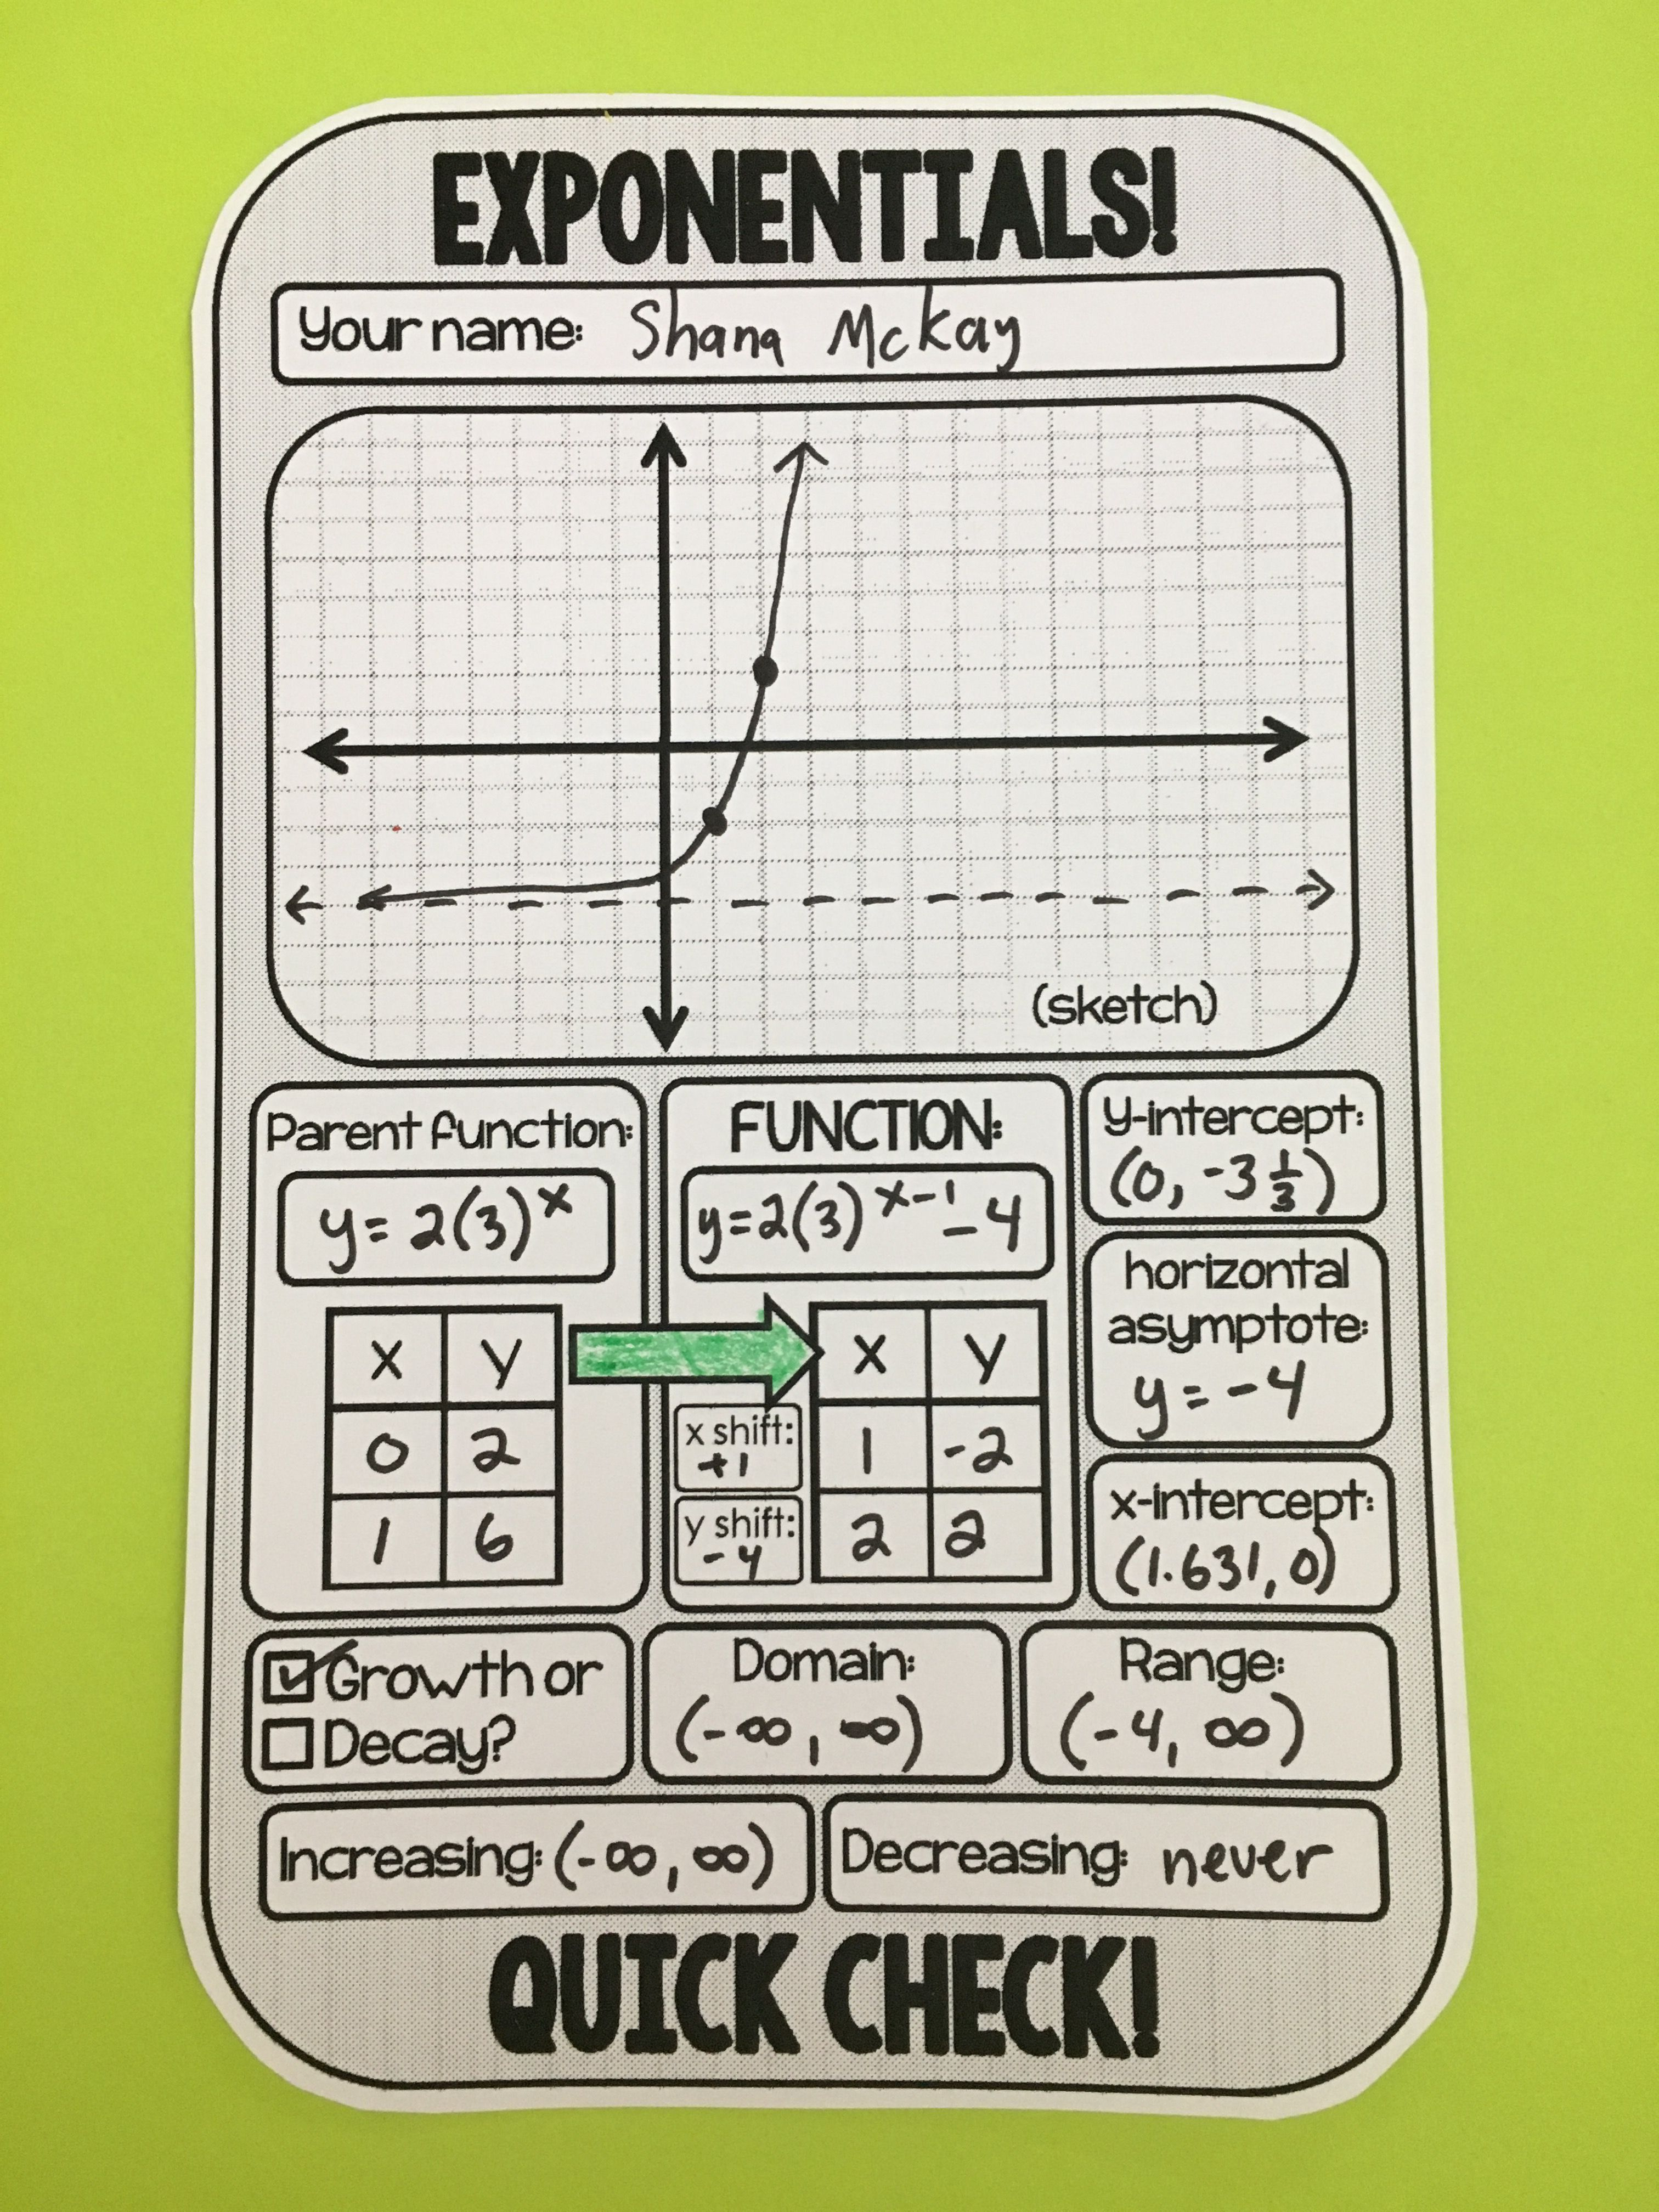 Exponential functions quick check and warmup template